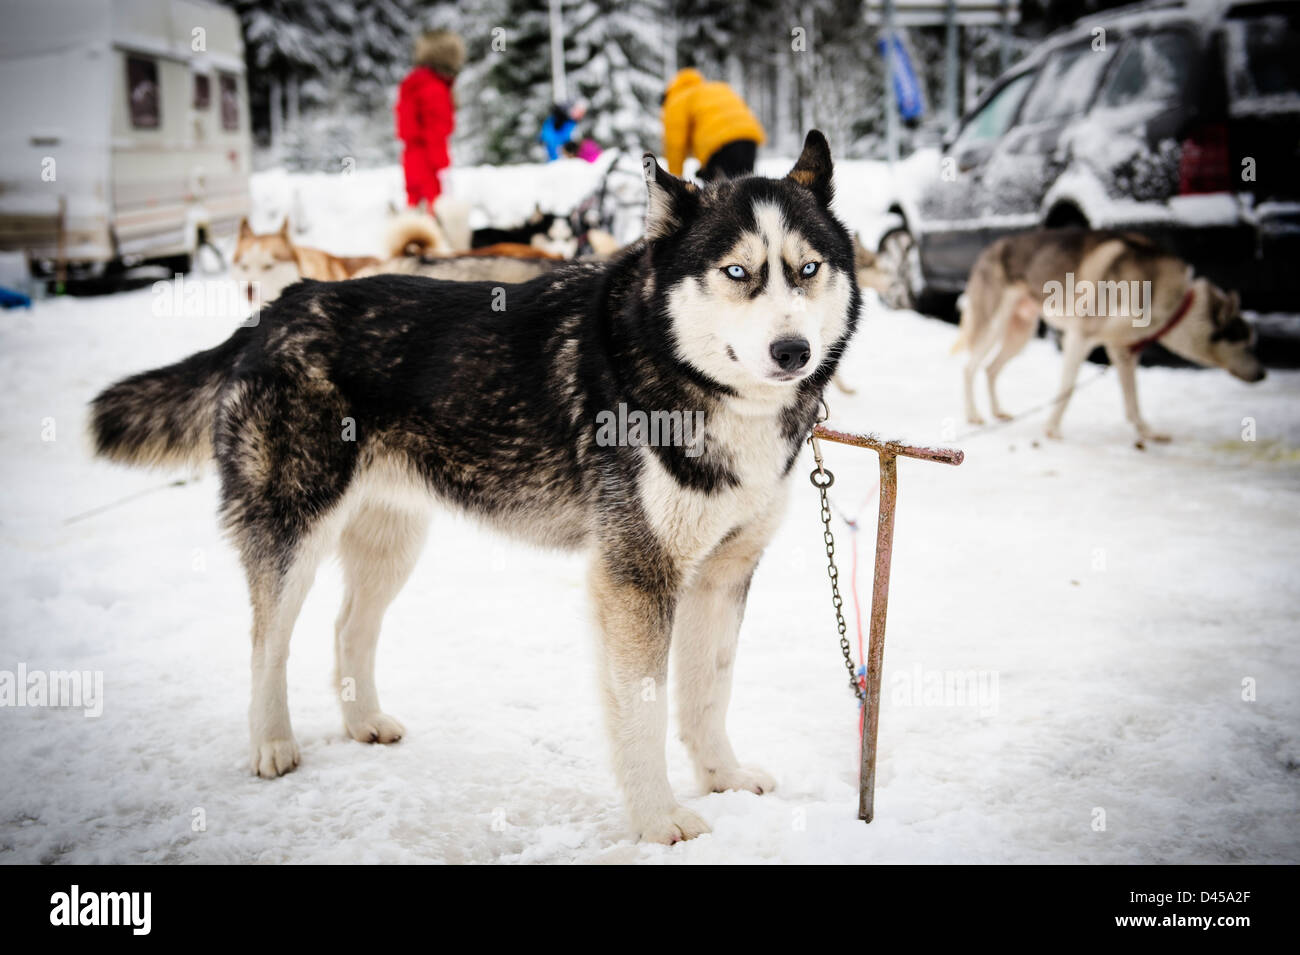 A husky sled dog before racing in the Sled dog competition of the Husqvarna Border Rush race in Jakuszyce, Poland. - Stock Image